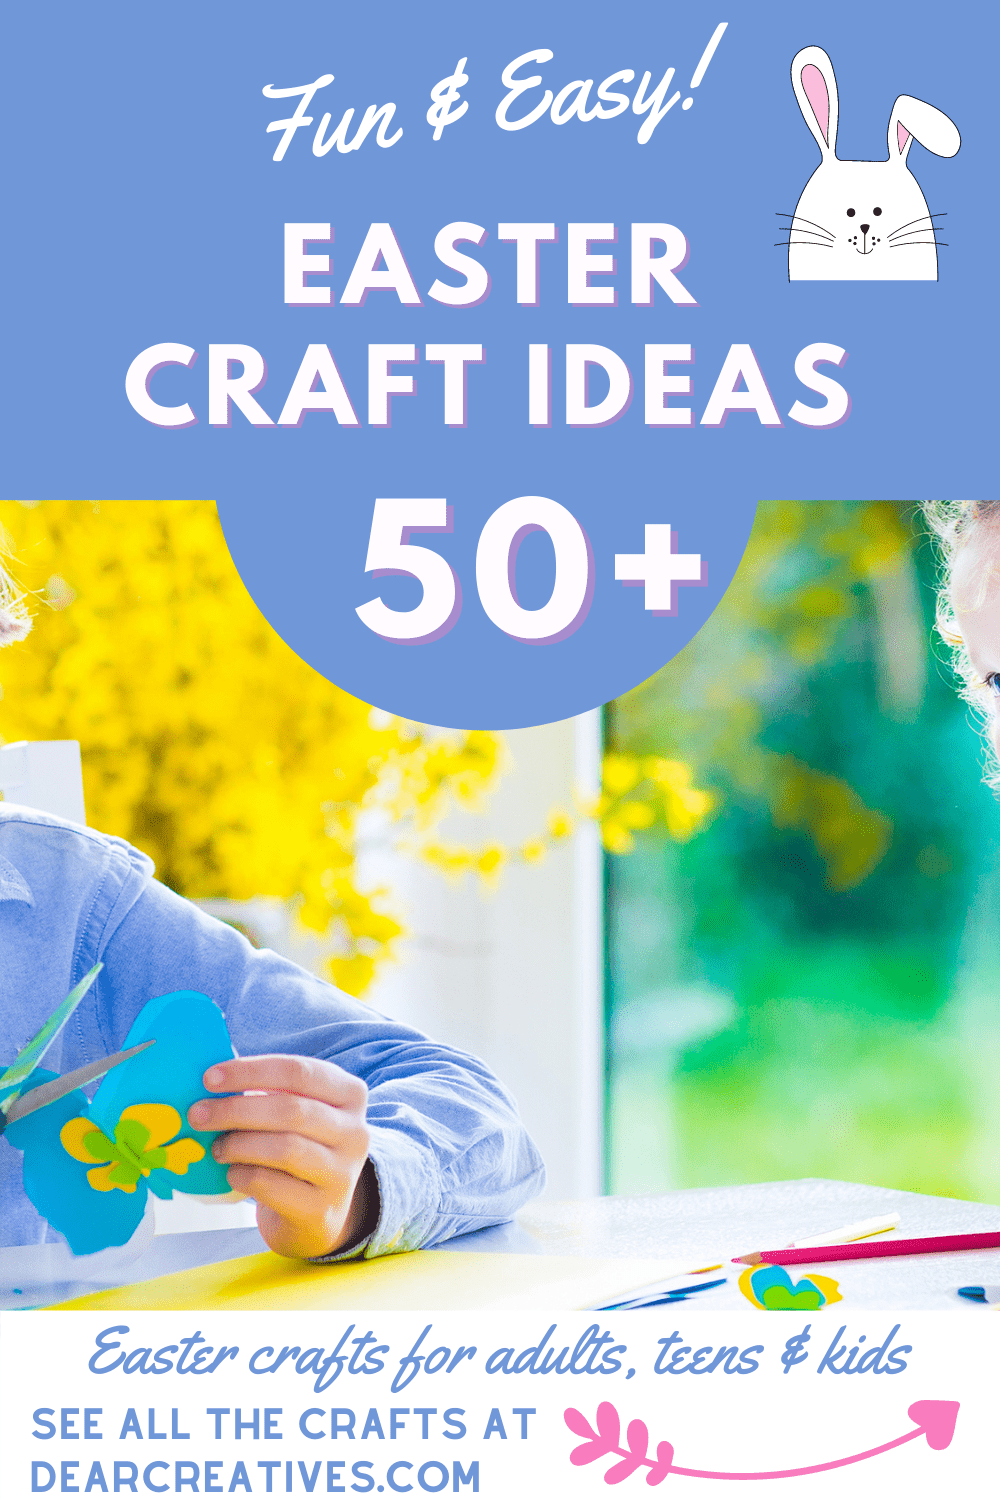 50+ Easter Craft Ideas That Are Fun & Easy!